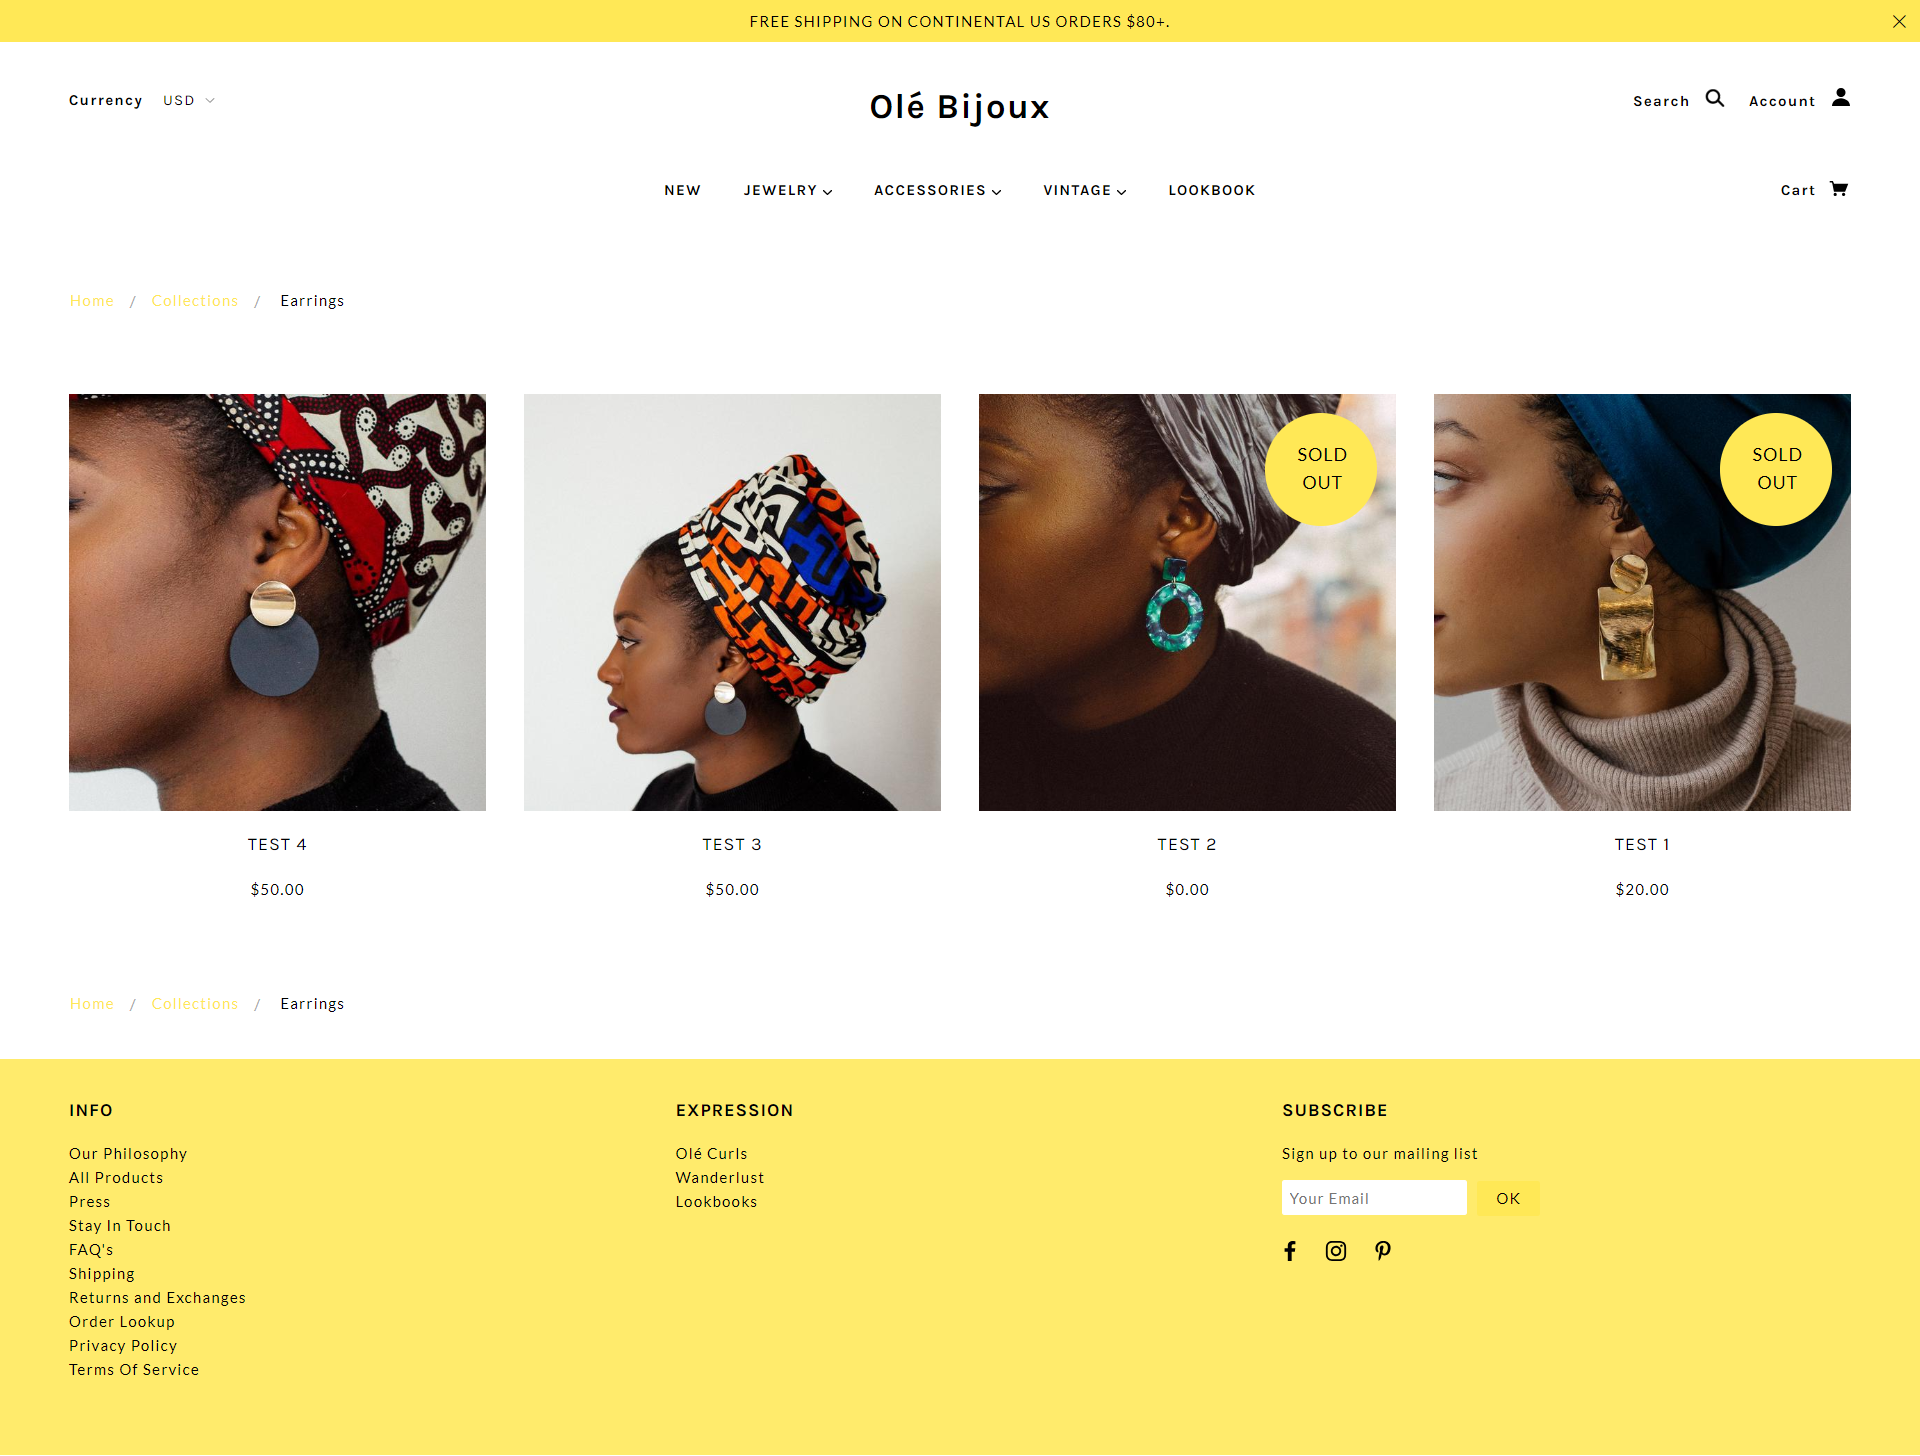 screencapture-ole-bijoux-myshopify-collections-earrings-2019-02-06-18_26_01.png